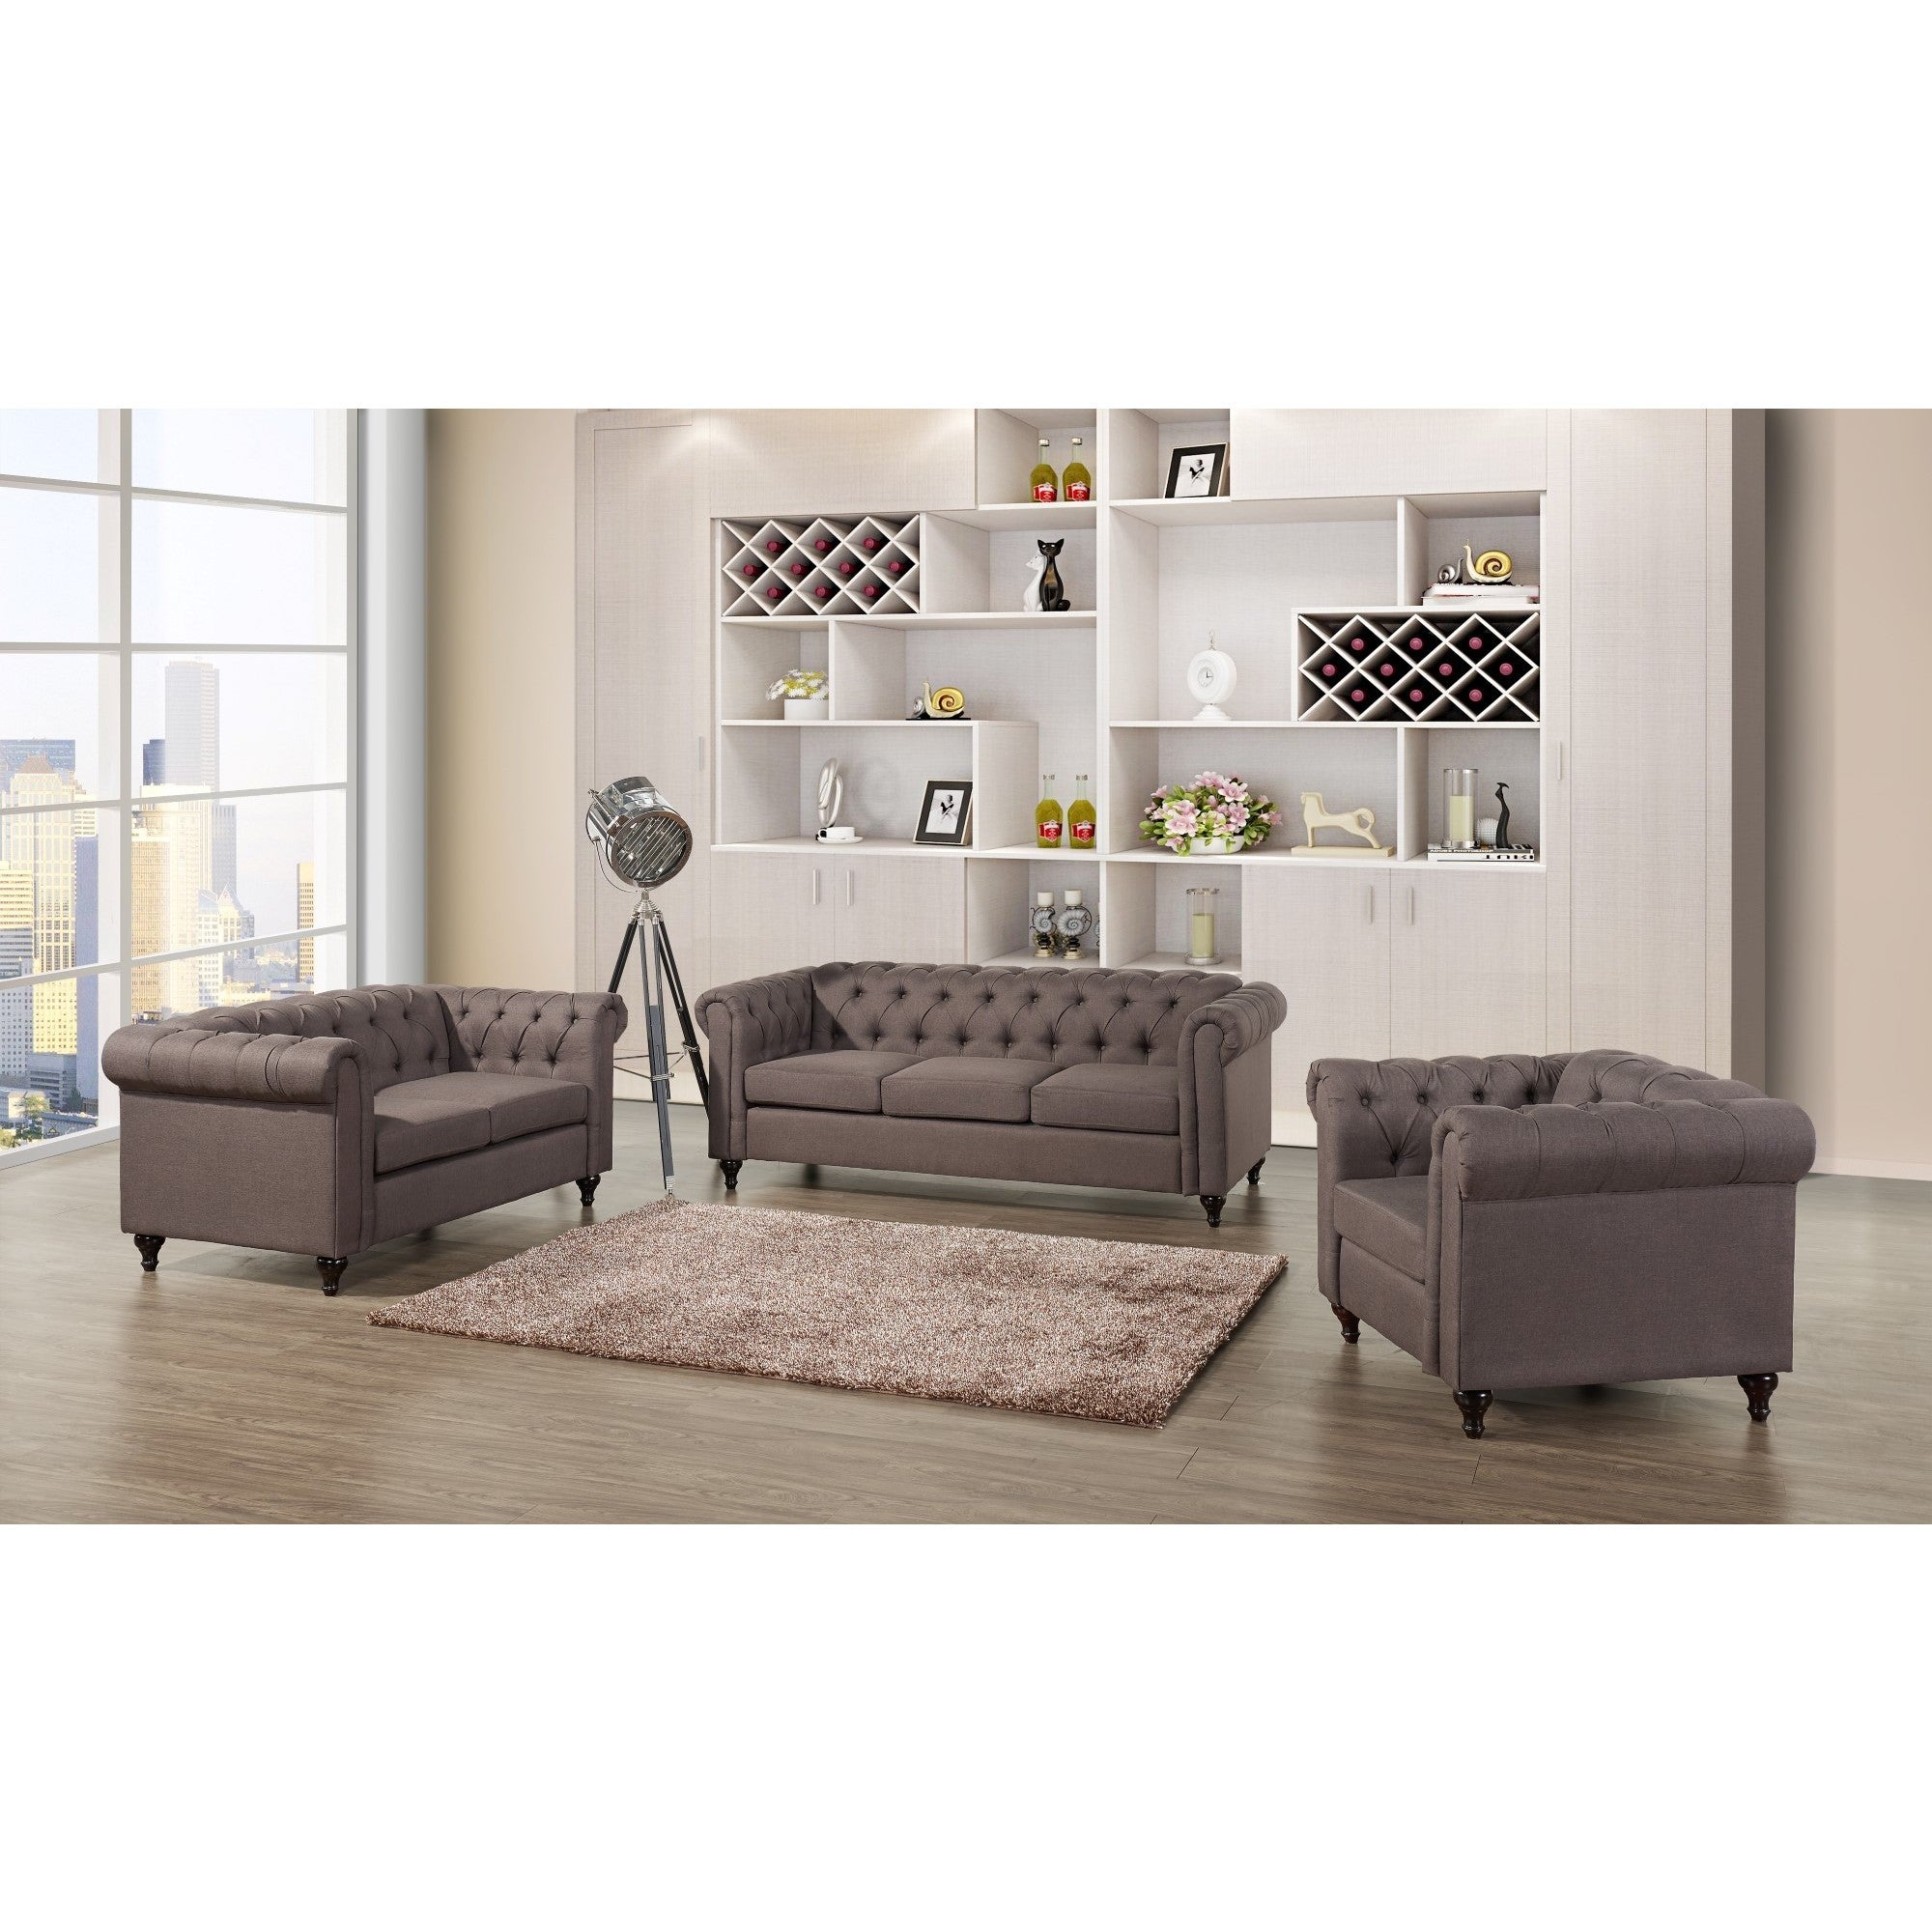 Thomas Chesterfield Linen Fabric Tufted Sofa Loveseat and Chair